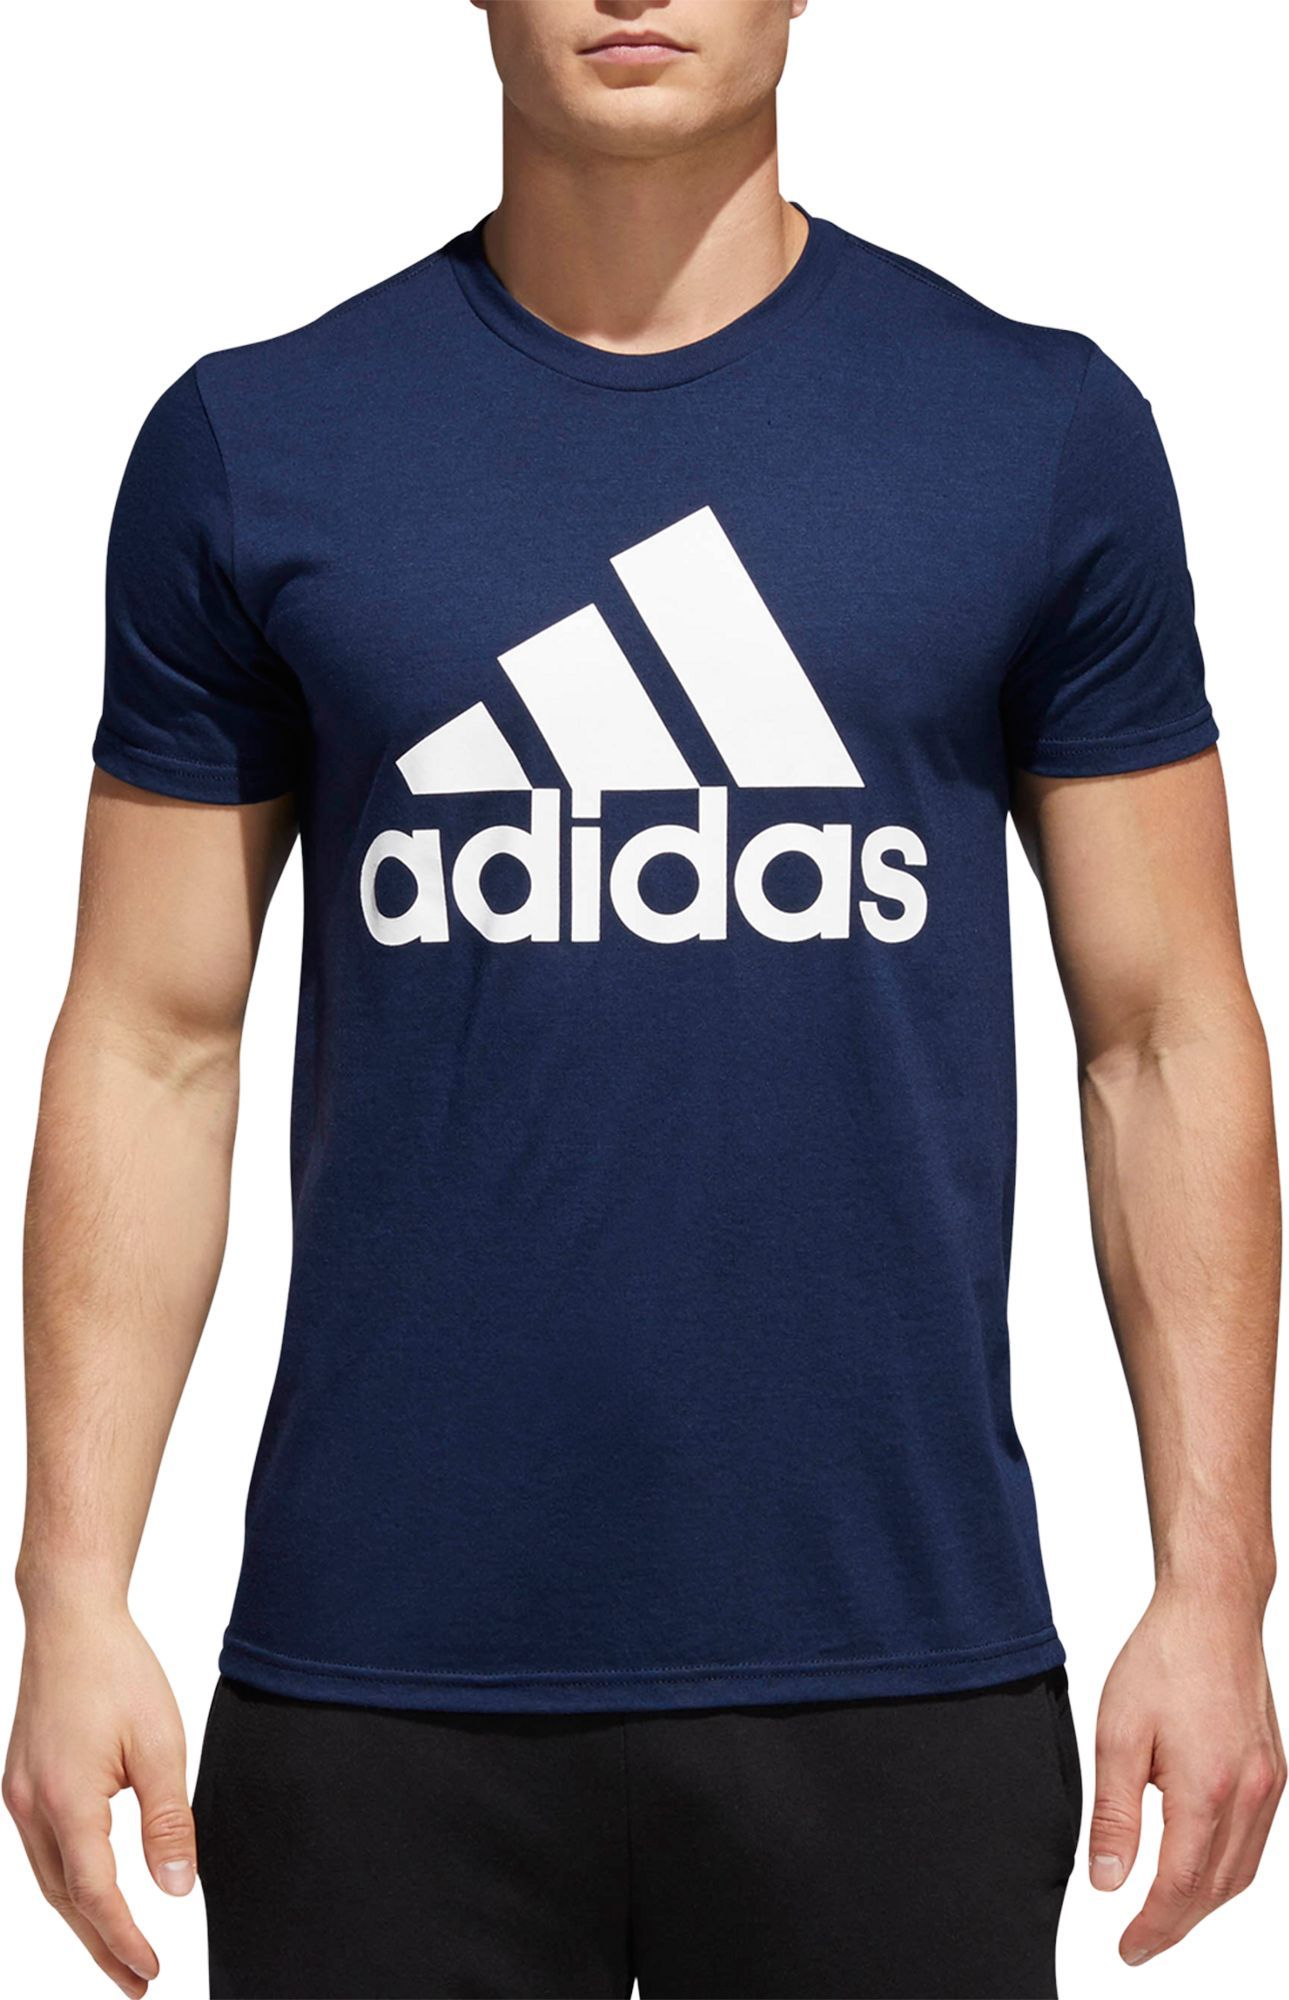 sports shoes a993a 1aaed adidas Mens Badge of Sport Classic Graphic Tee, Size 4XL, ...